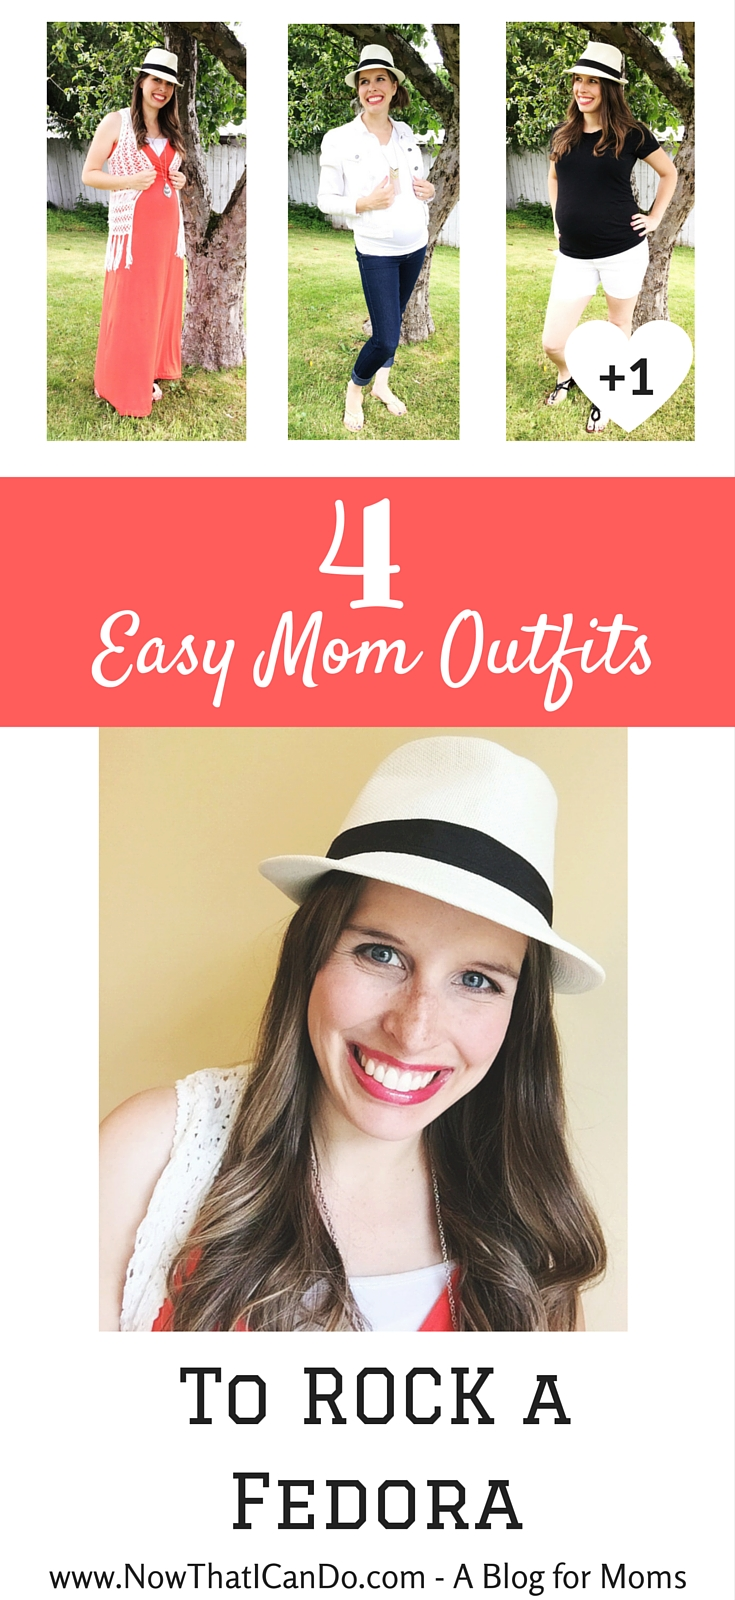 No more excuses! This mommy blogger shares how she put together four simple outfits to style a fedora- and she had never worn one before in her life! Moms can have fun with hats too. Straw hats are hugely popular right now, so head over to get inspired and see her selection of affordable ($10-$20) fedoras. // Mom Fashion // Mommy Style // Summer Straw Hat // How to // Inspiration // Budget friendly // What to wear